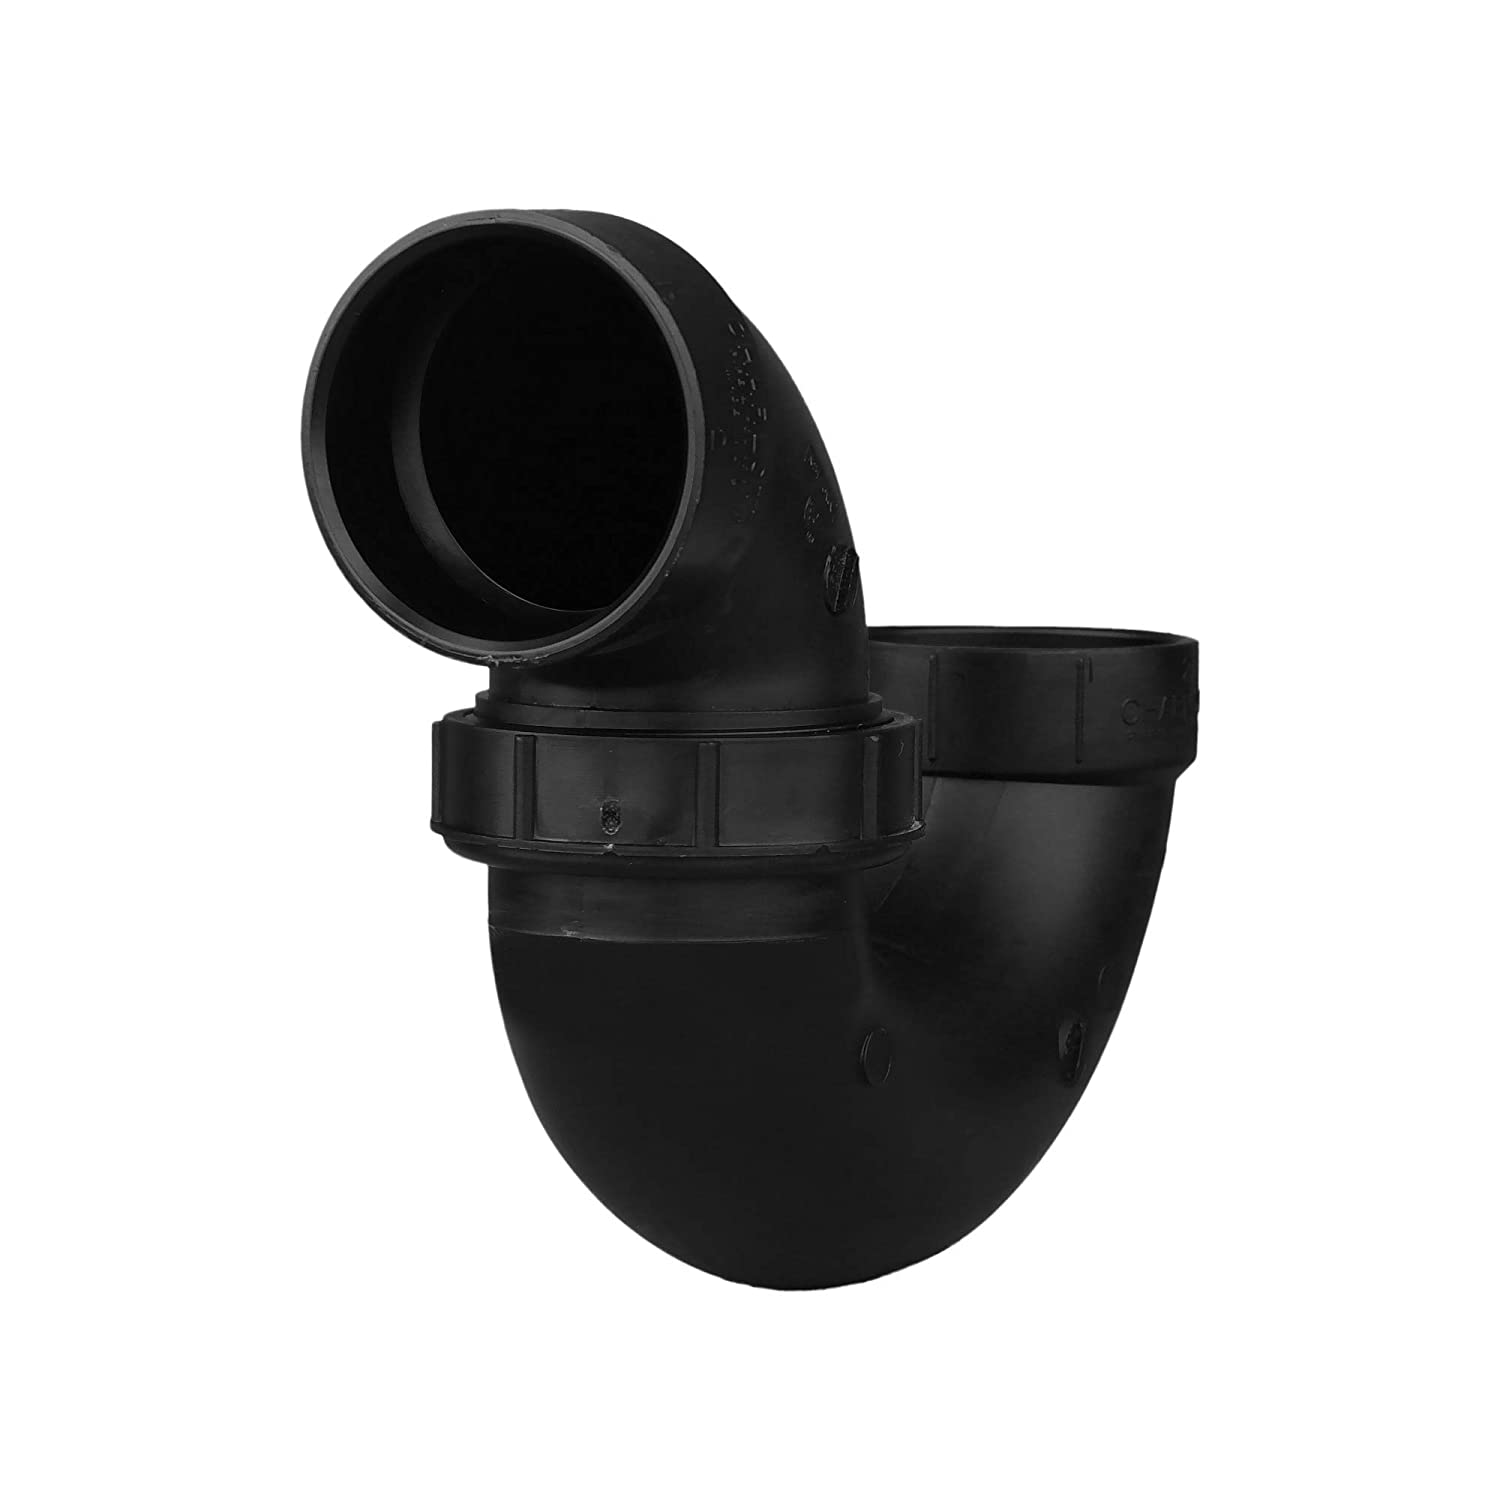 Single Unit Drain, Waste and Vent Charlotte Pipe 2 DWV P-Trap with Threaded Union W//p-nut ABS DWV Schedule 40